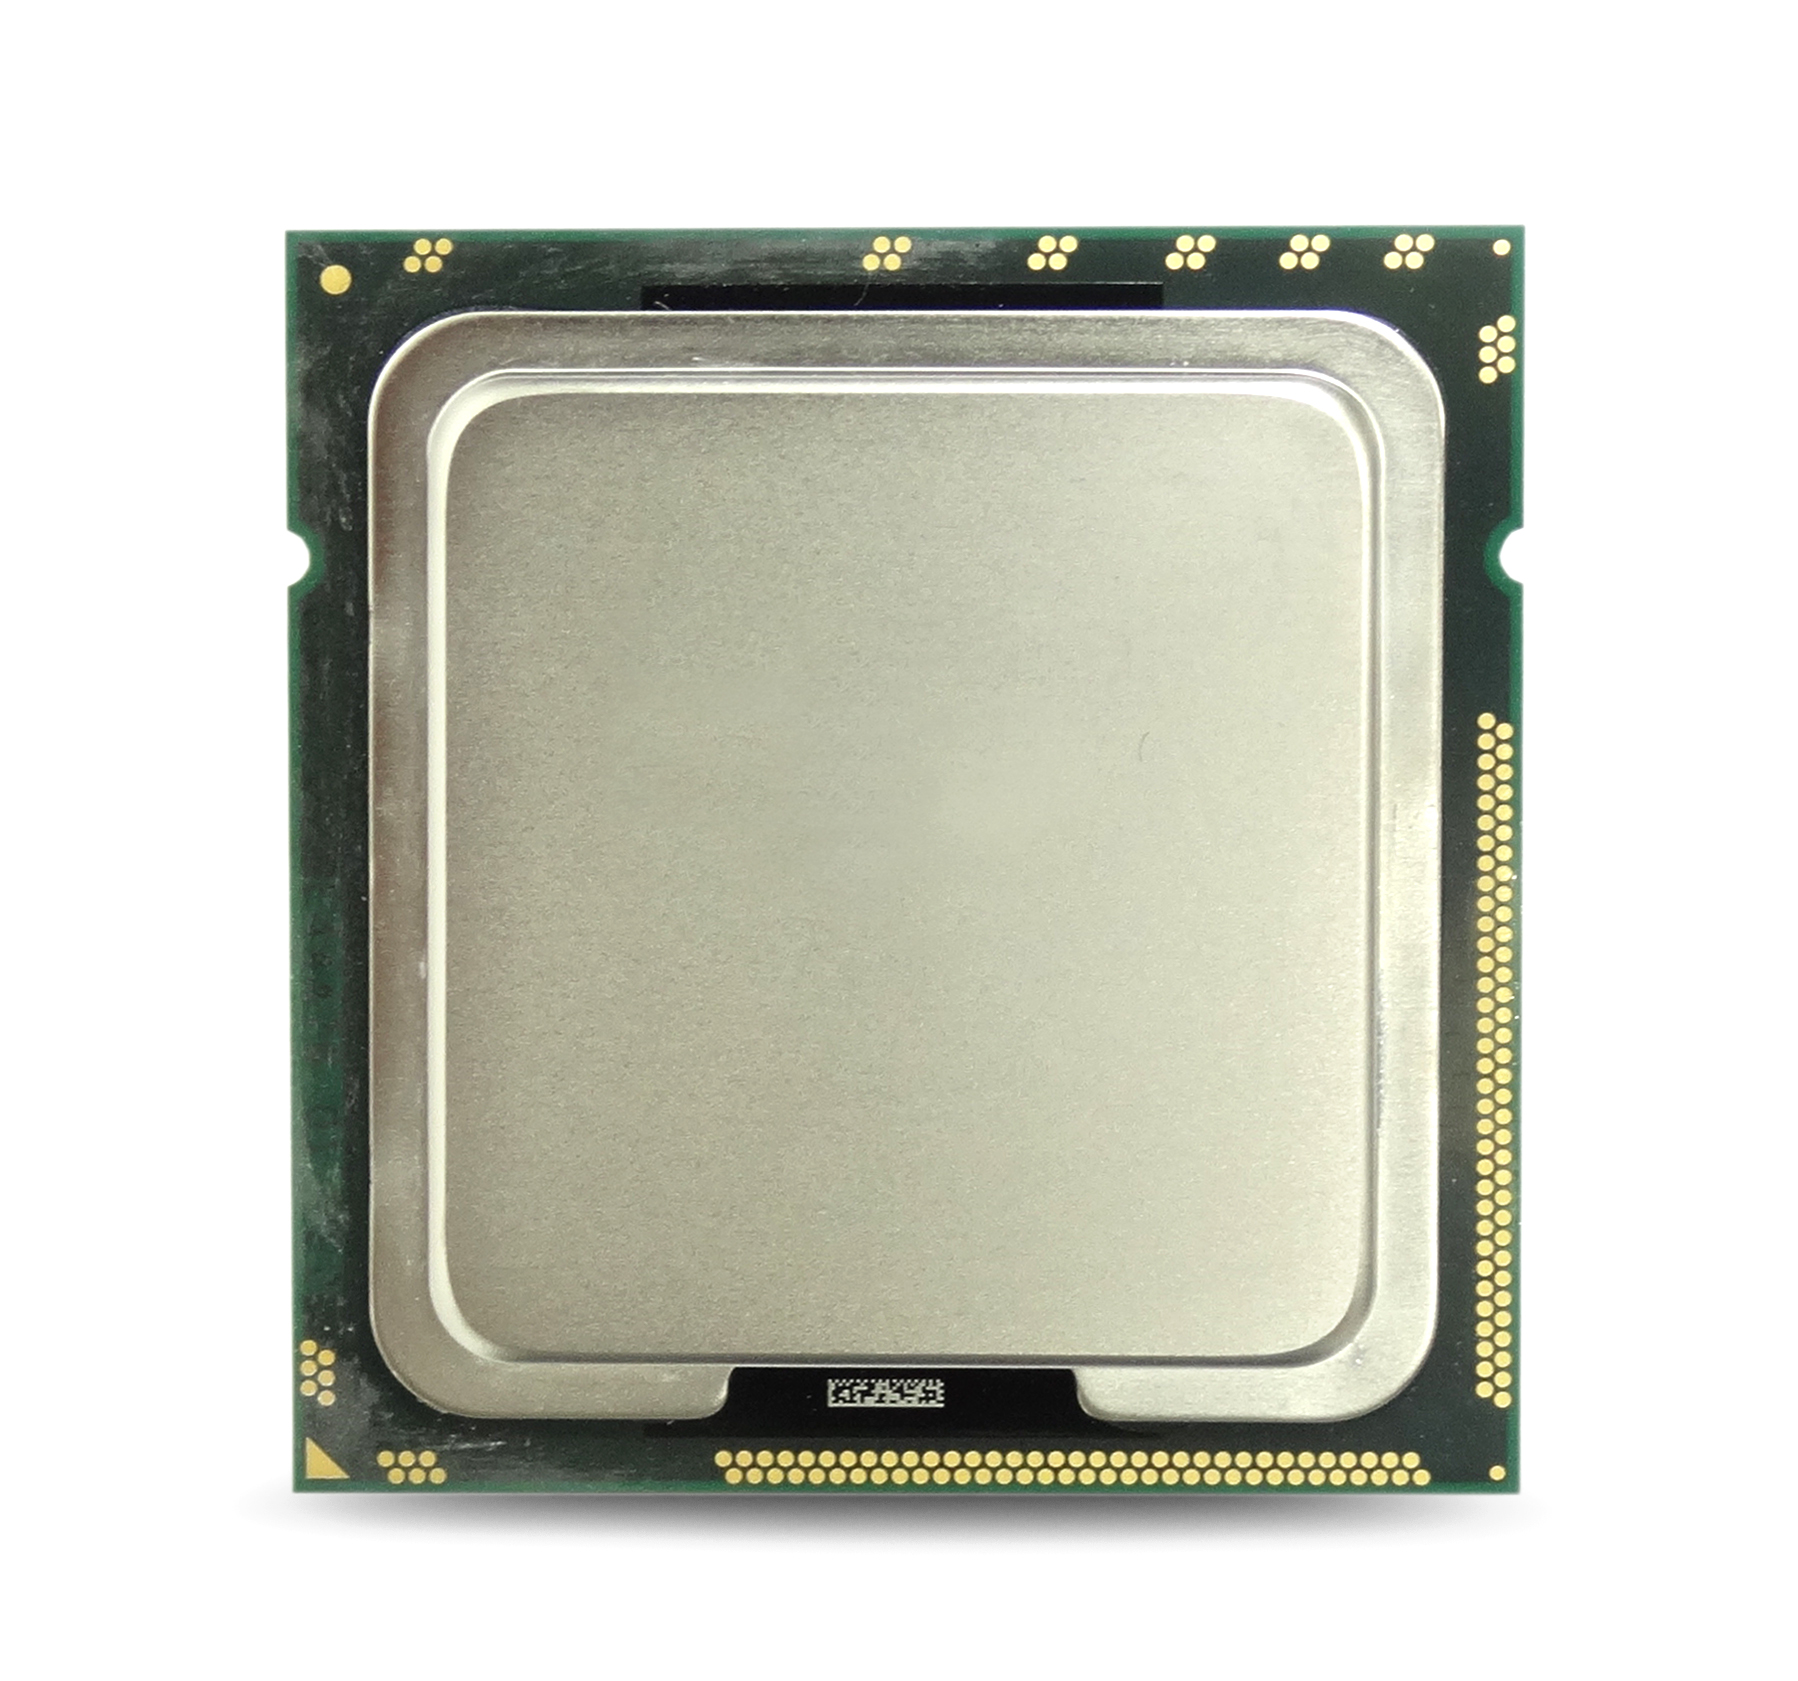 SLBKC Intel Xeon E5507 2.26GHz Quad Core LGA 1366 Processor (SLBKC)